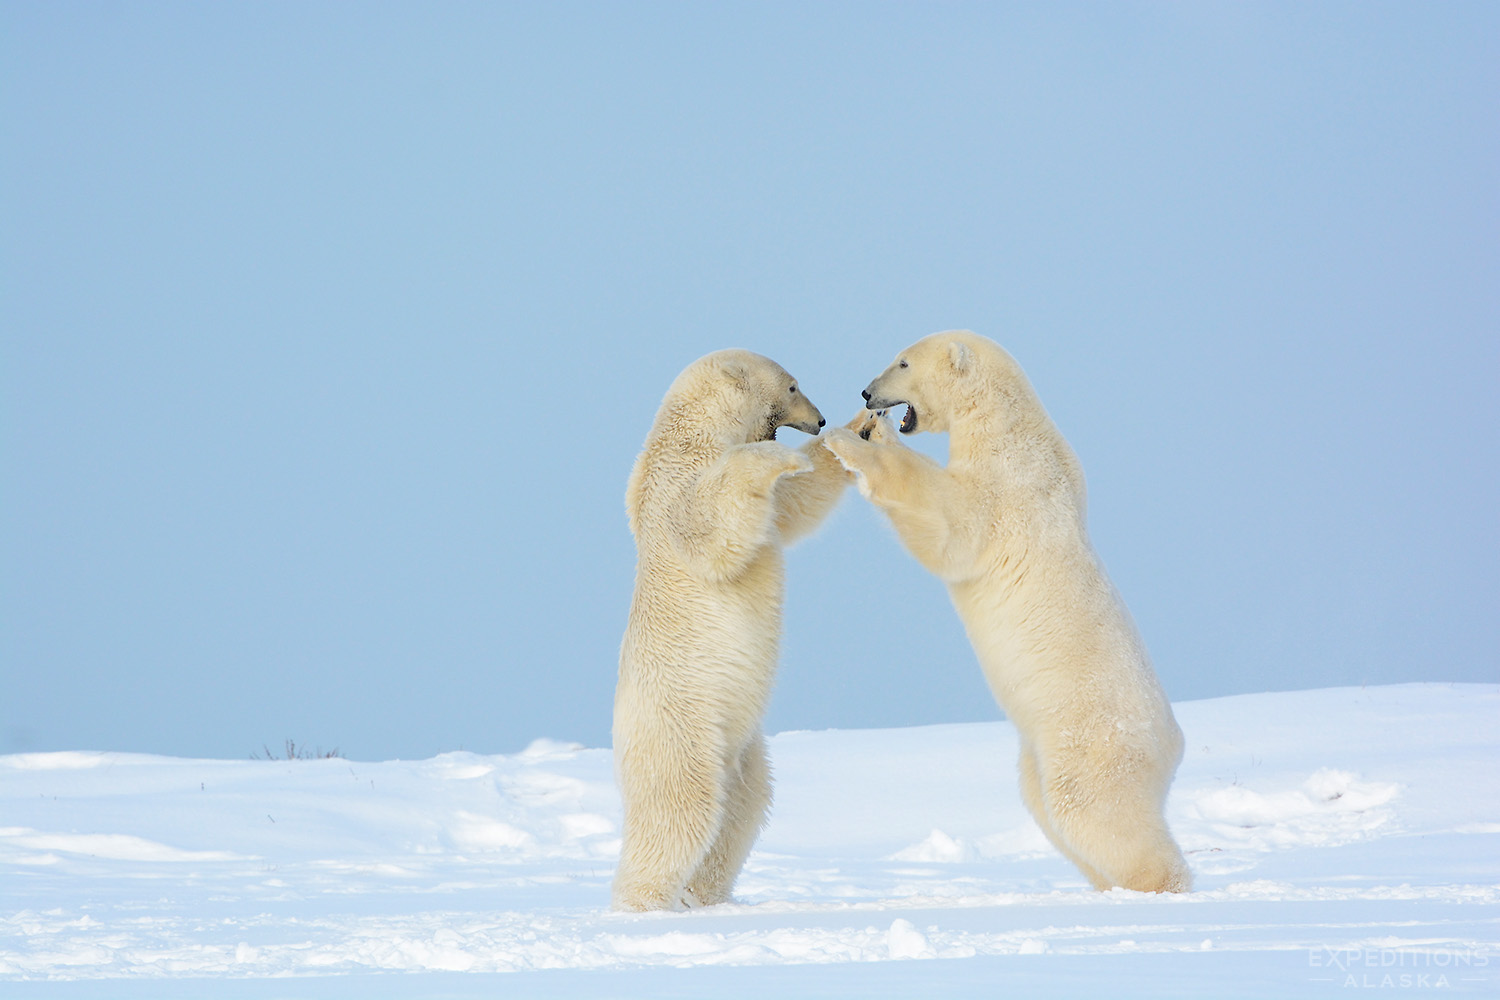 Male Polar Bears Sparring